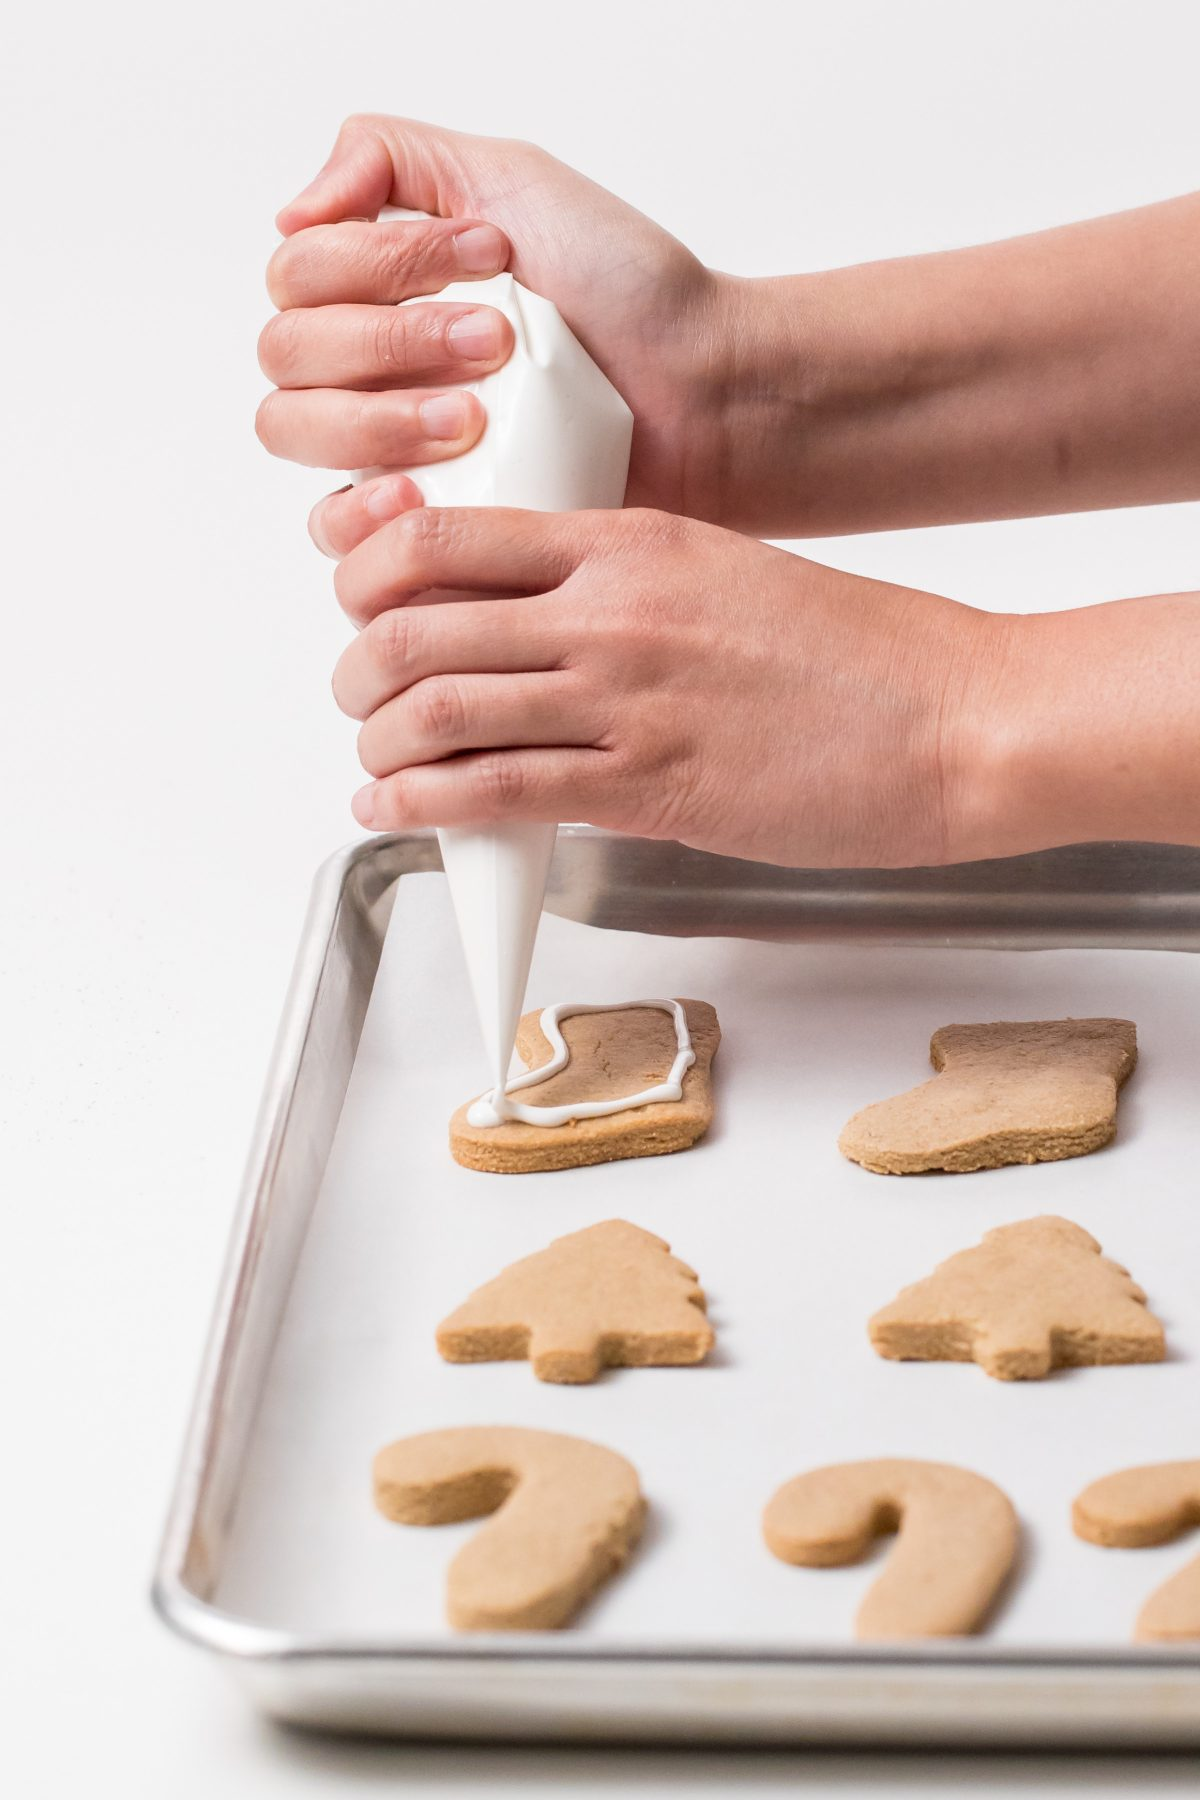 5D4B7366 - Vegan Gluten-Free Iced Holiday Shortbread Cookies - Pipe icing on the cookies